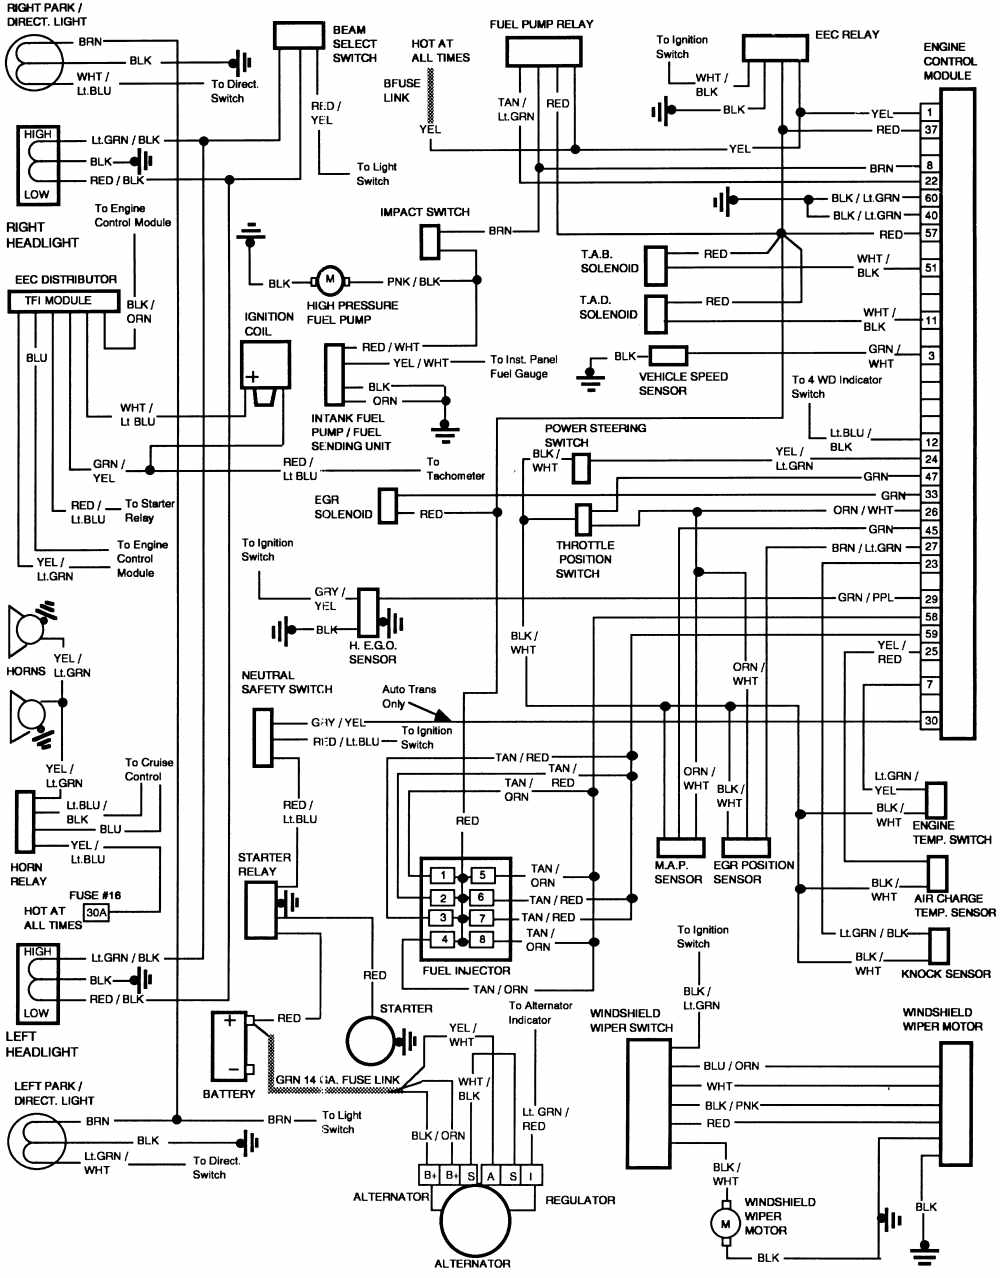 Ford F 250 1986 Engine Control Module Wiring Diagram c5 stereo wiring diagram? corvetteforum chevrolet corvette 1988 ford f350 wiring diagrams at crackthecode.co